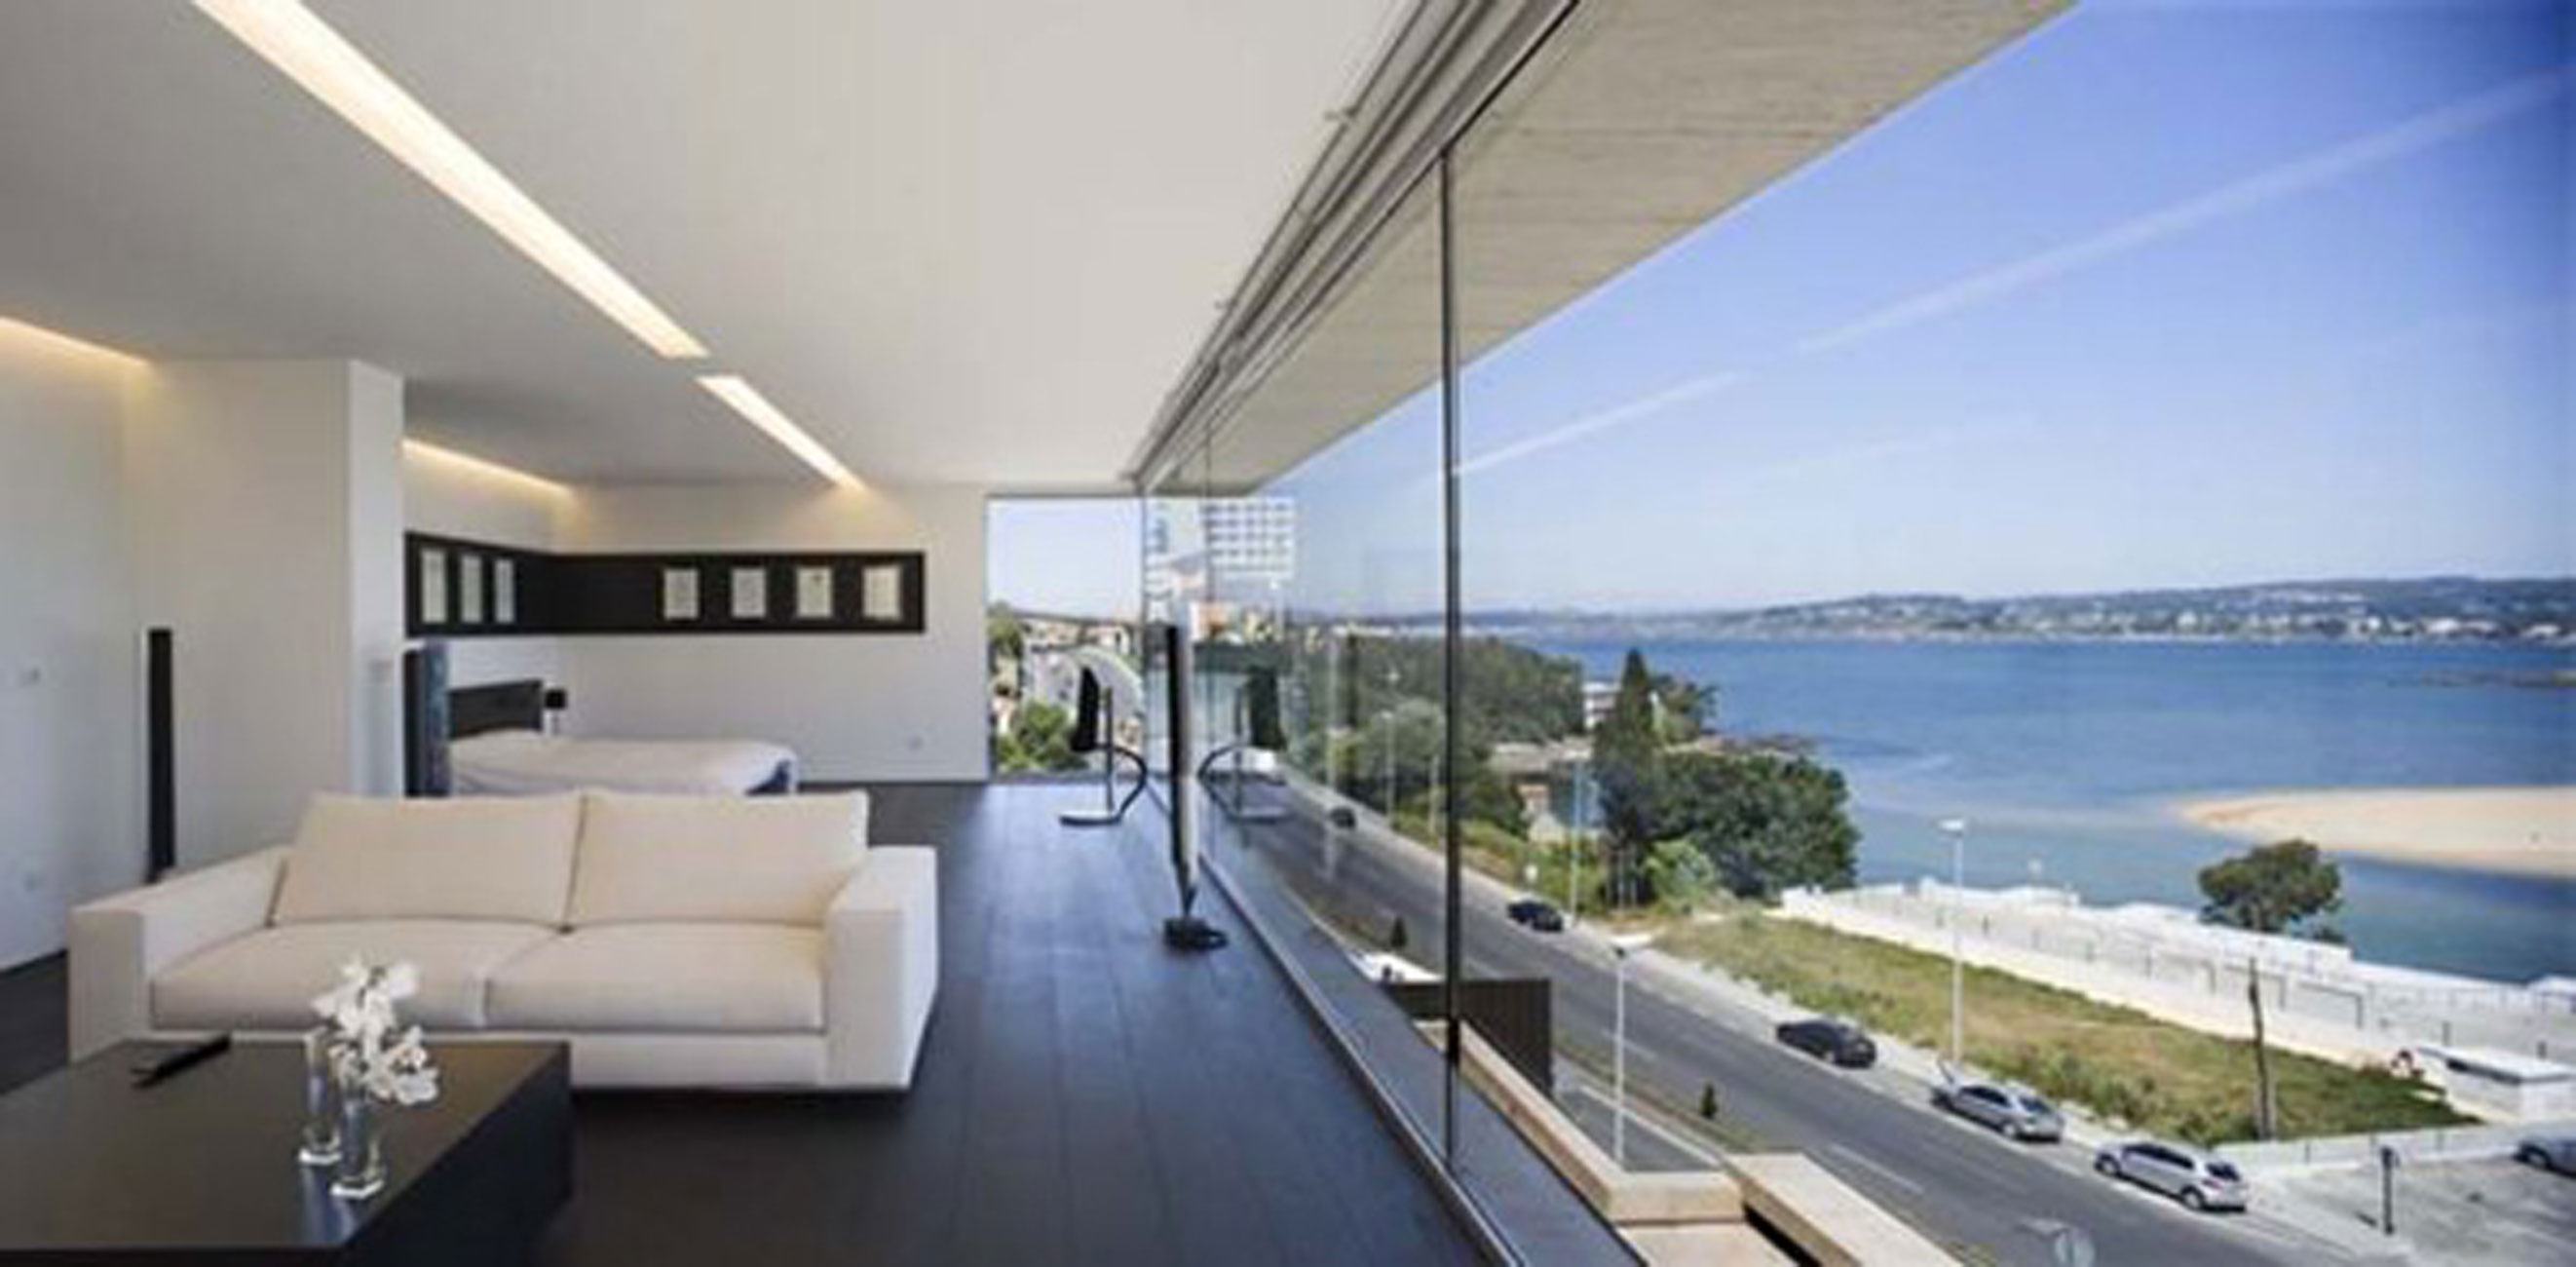 Modern Glass House Design in Cliff Side of Galicia Spain  Lounge  ViahouseCom